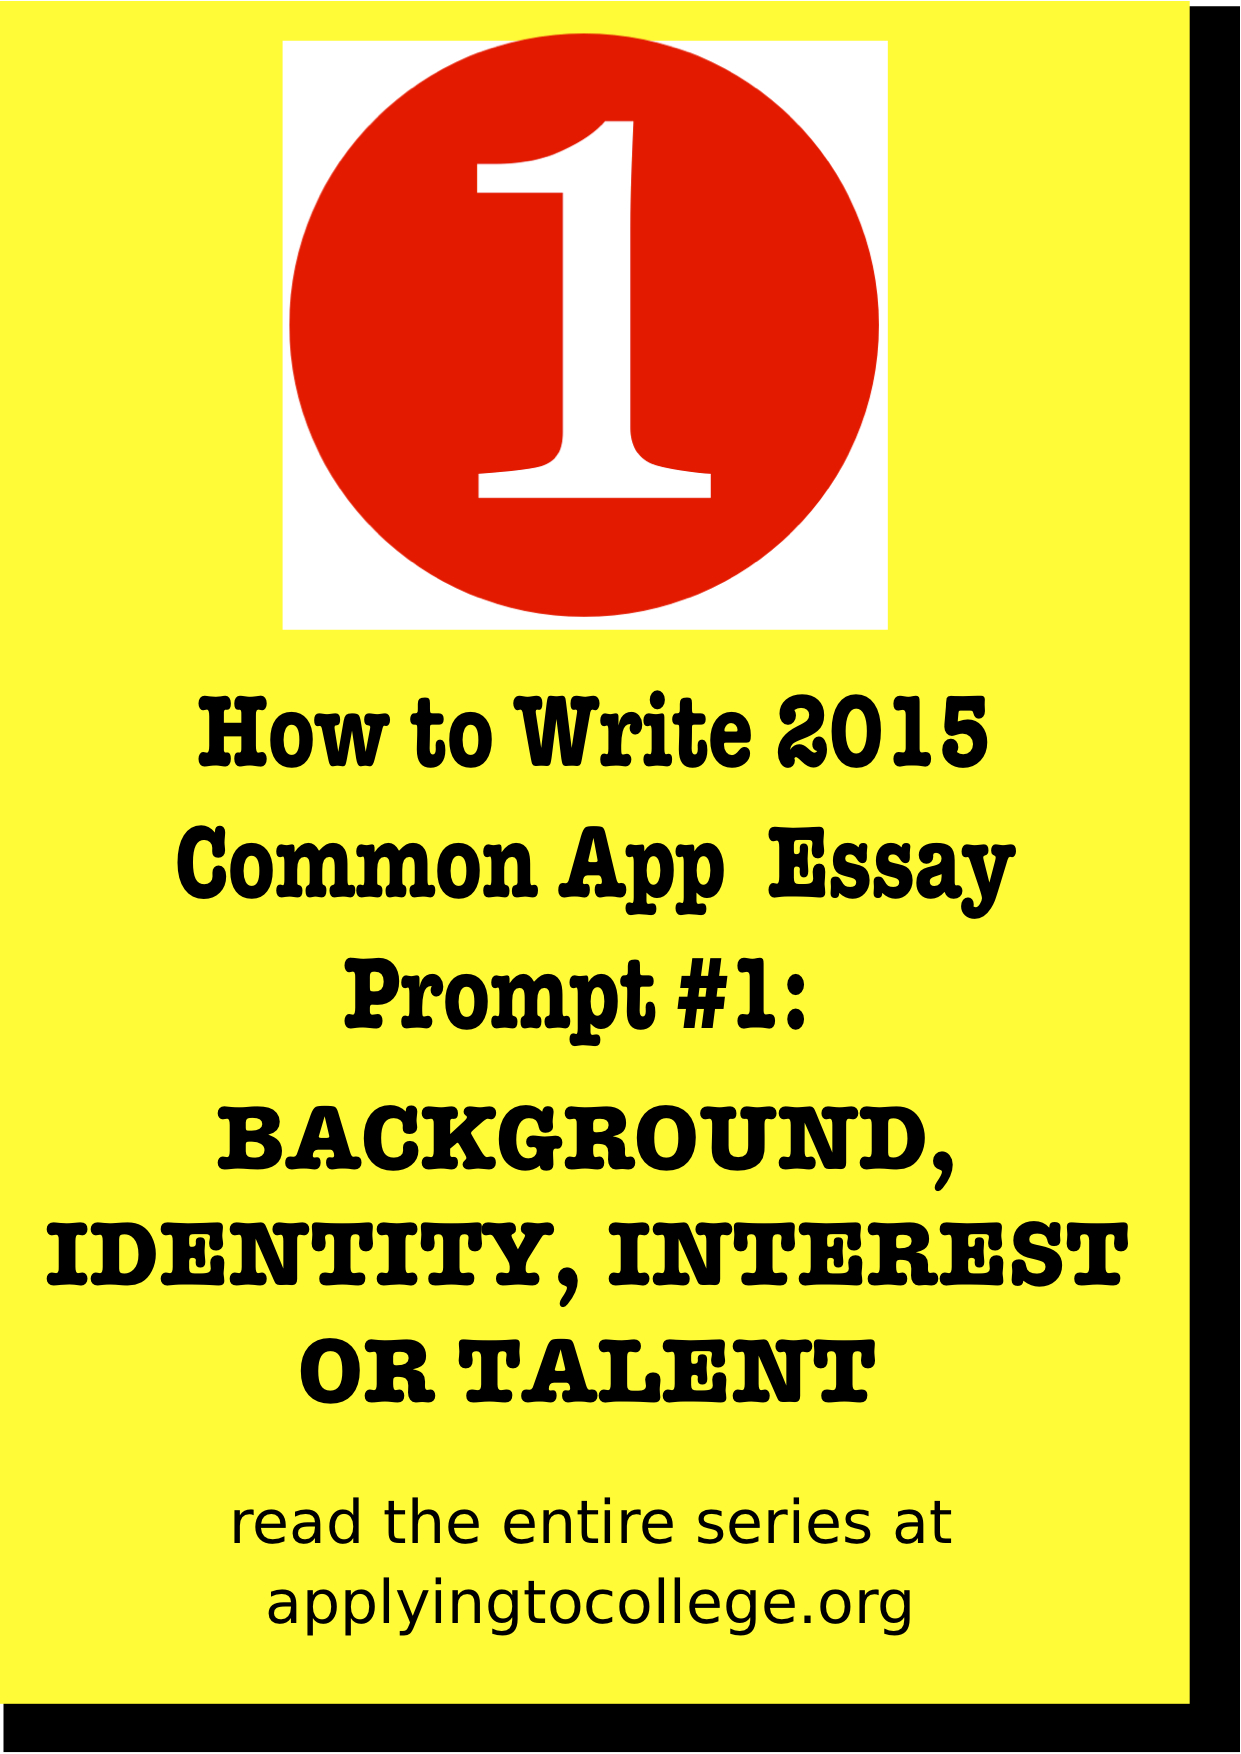 004 Essay Example Prompts For College Essays How To Write Common App Unusual 2015 Full